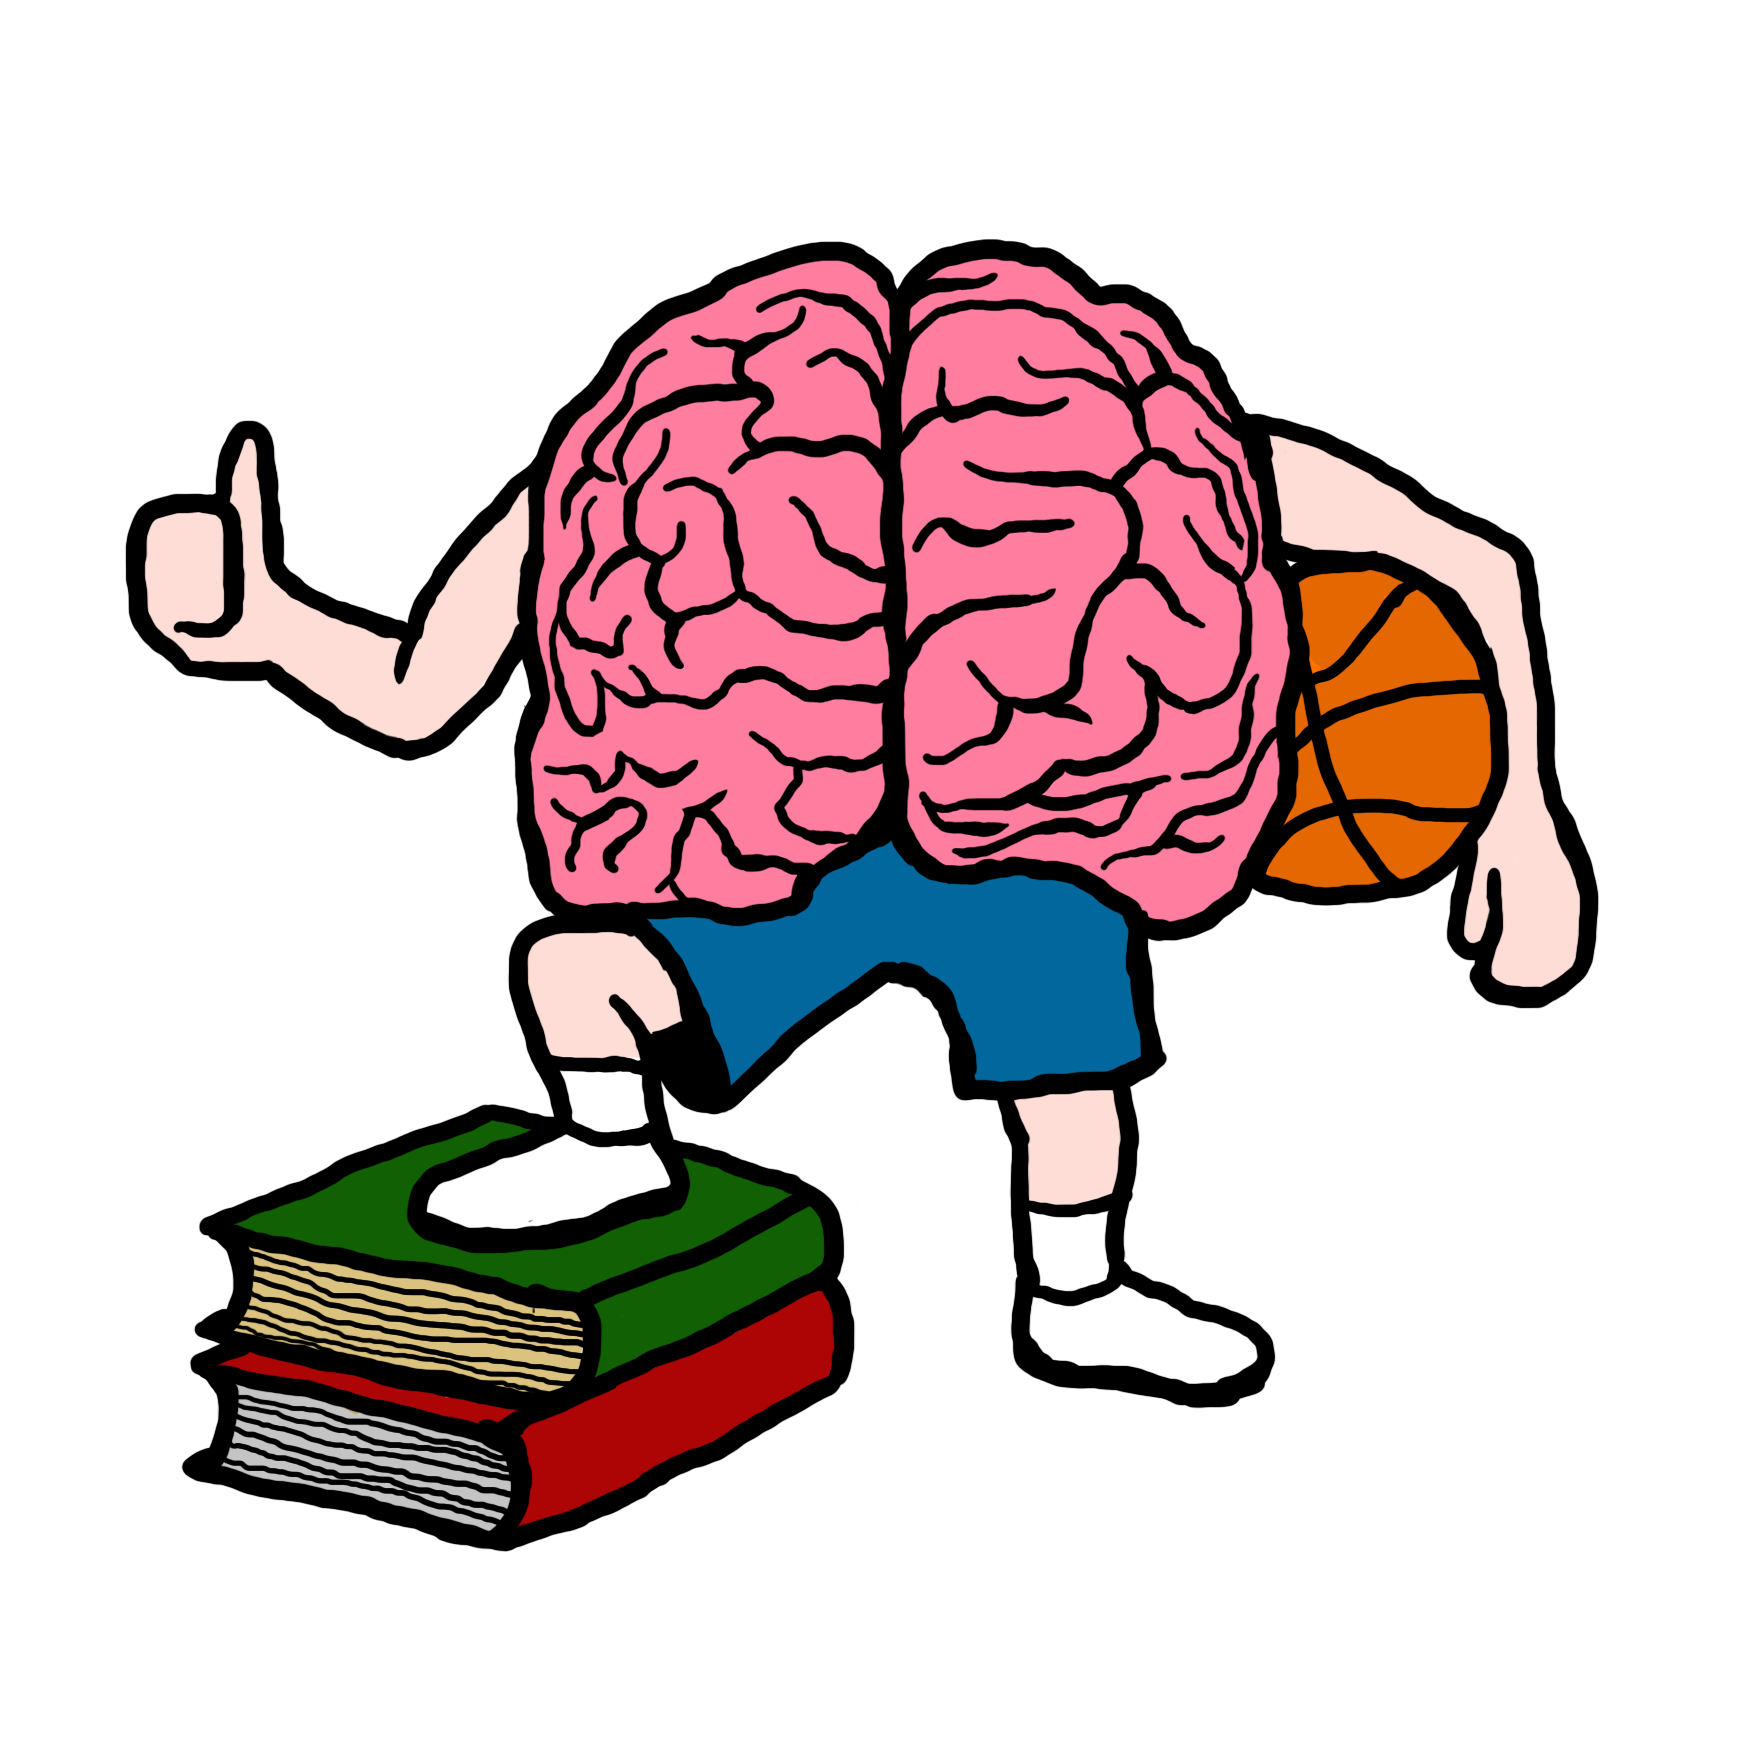 Uk basketball clipart clip art free download Brain Basketball - Power of PE   Stoke-on-Trent clip art free download